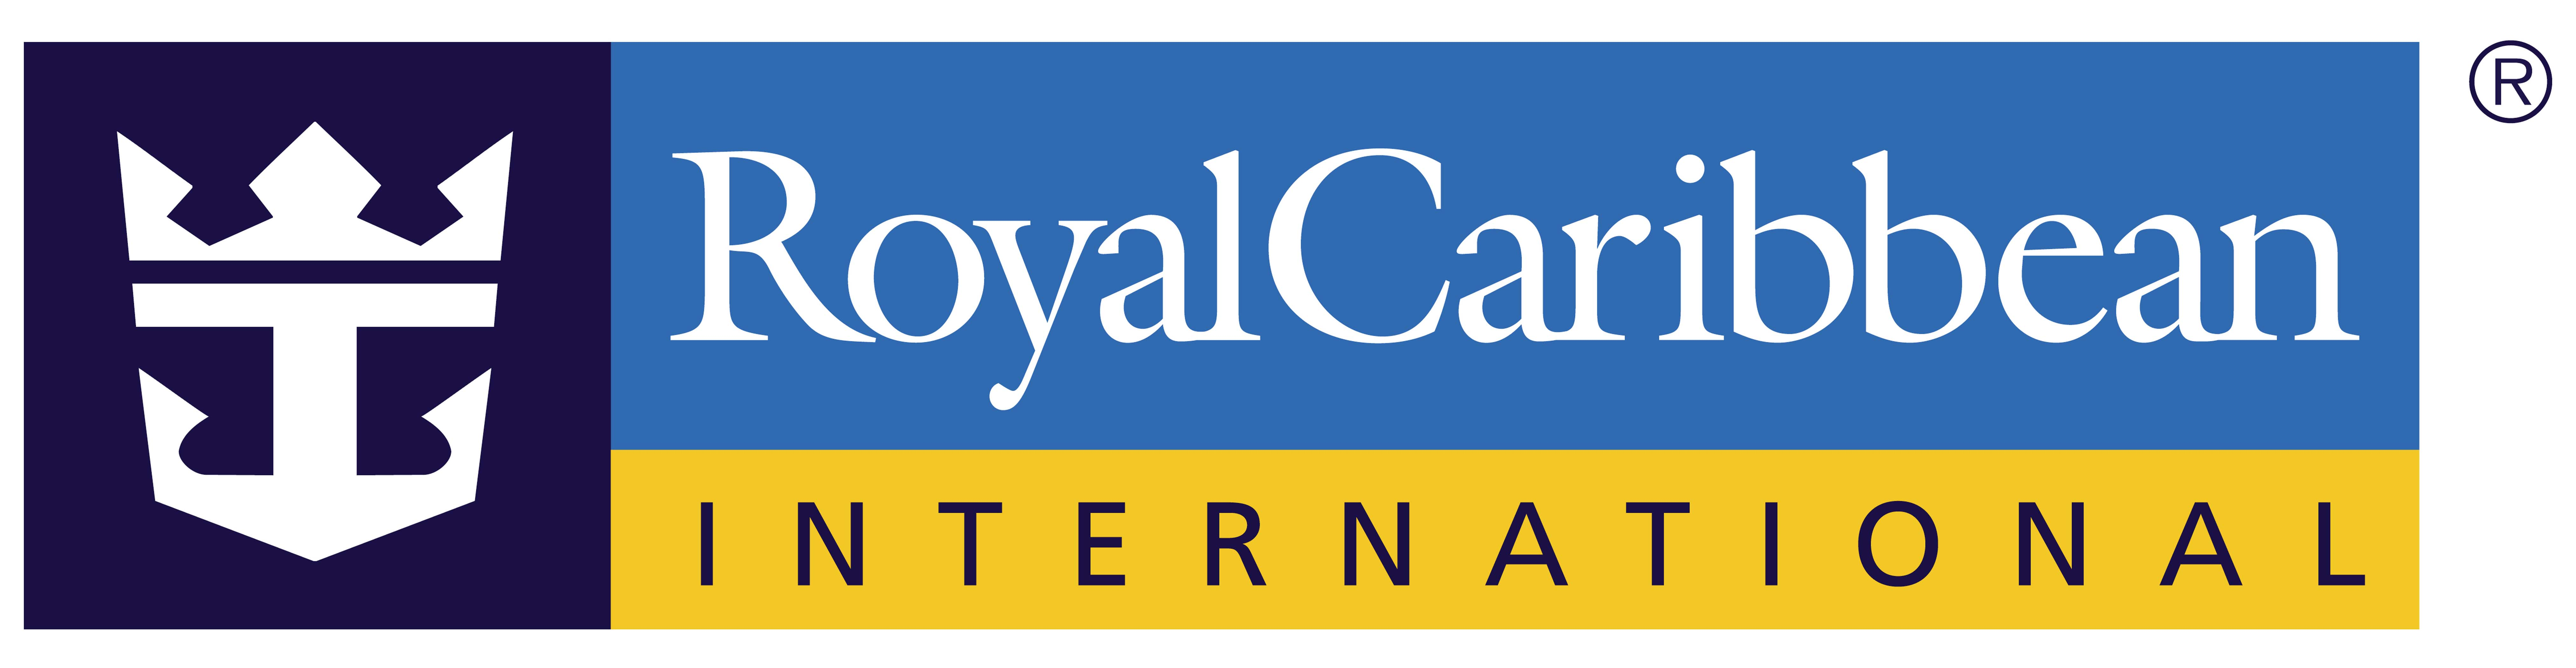 Royal Caribbean Cruiseline Logo